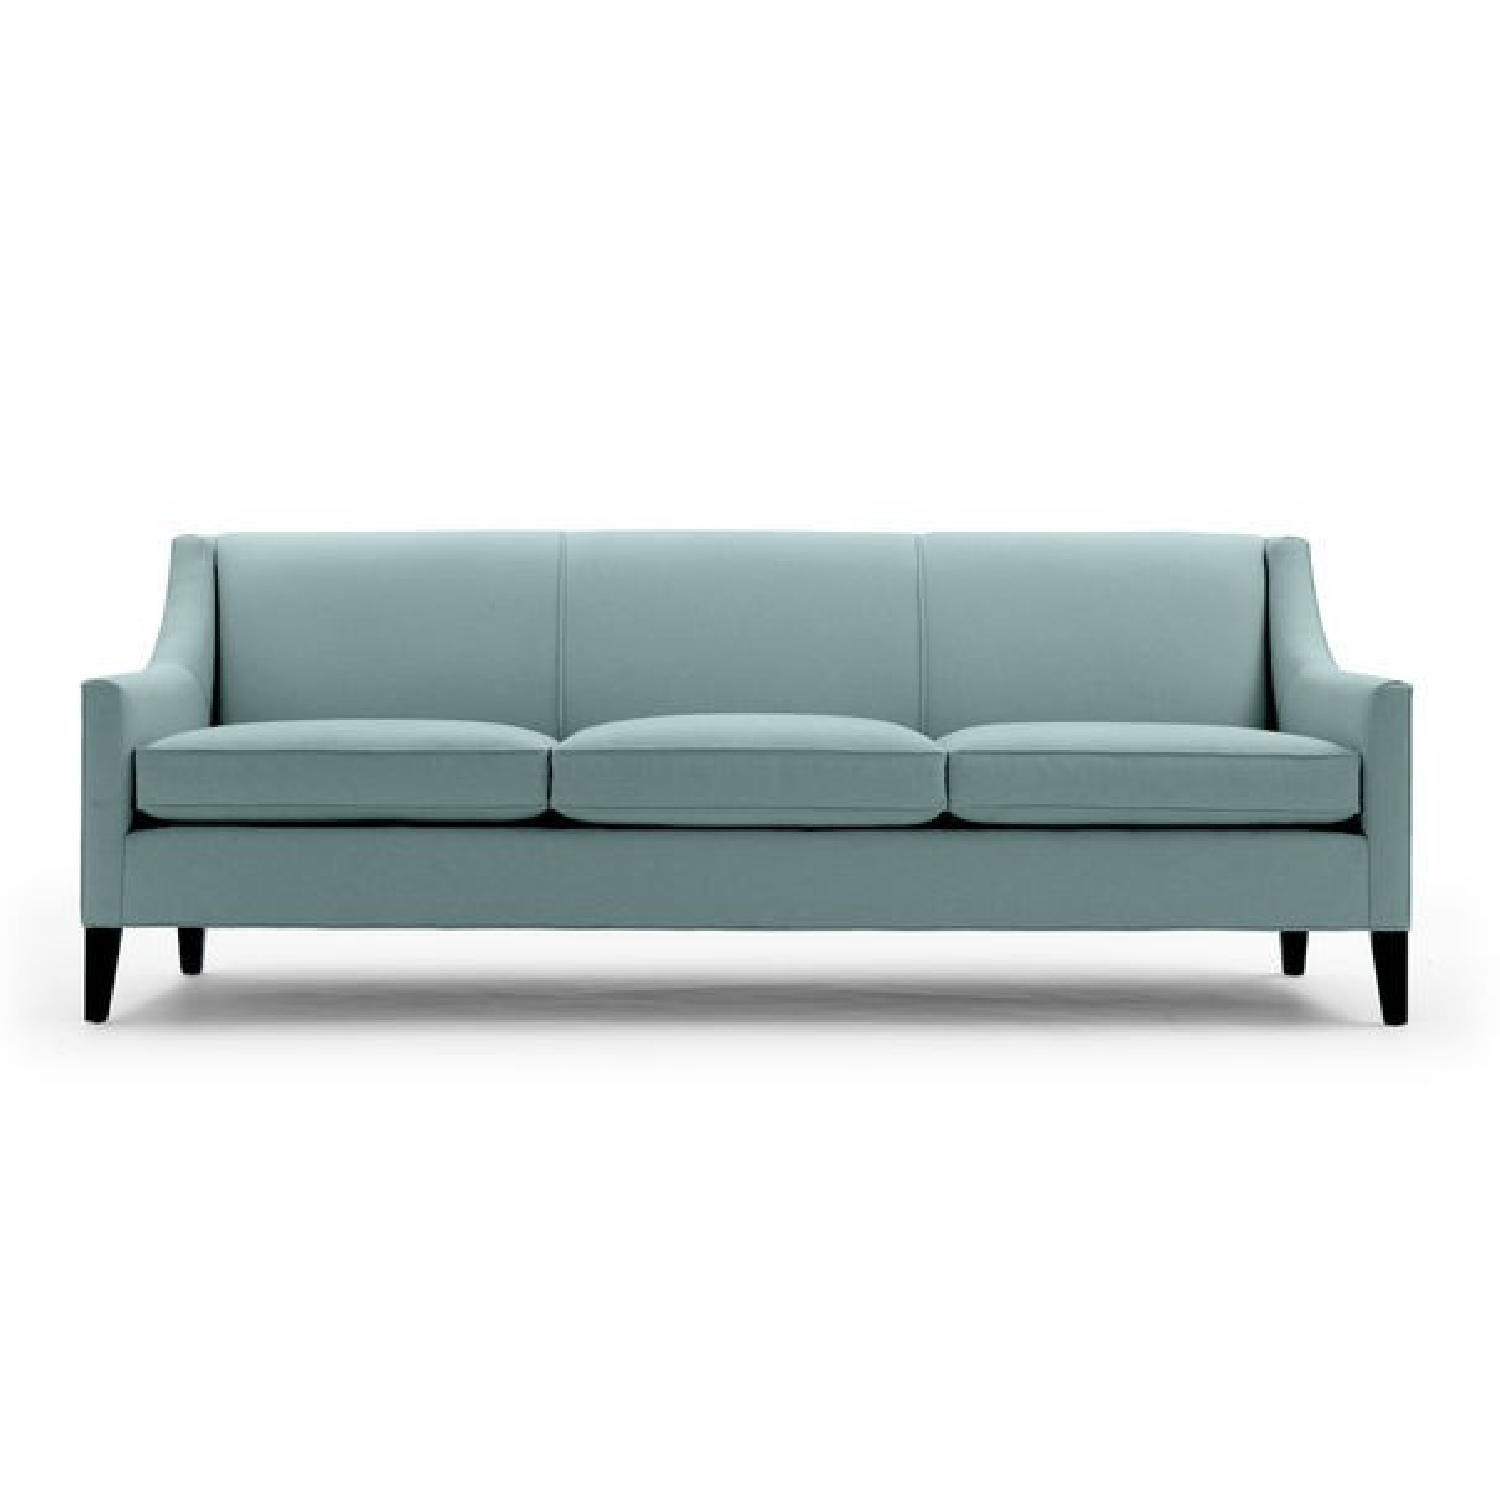 Mitchell Gold + Bob Williams Cara Sofa in Keswick-Navy